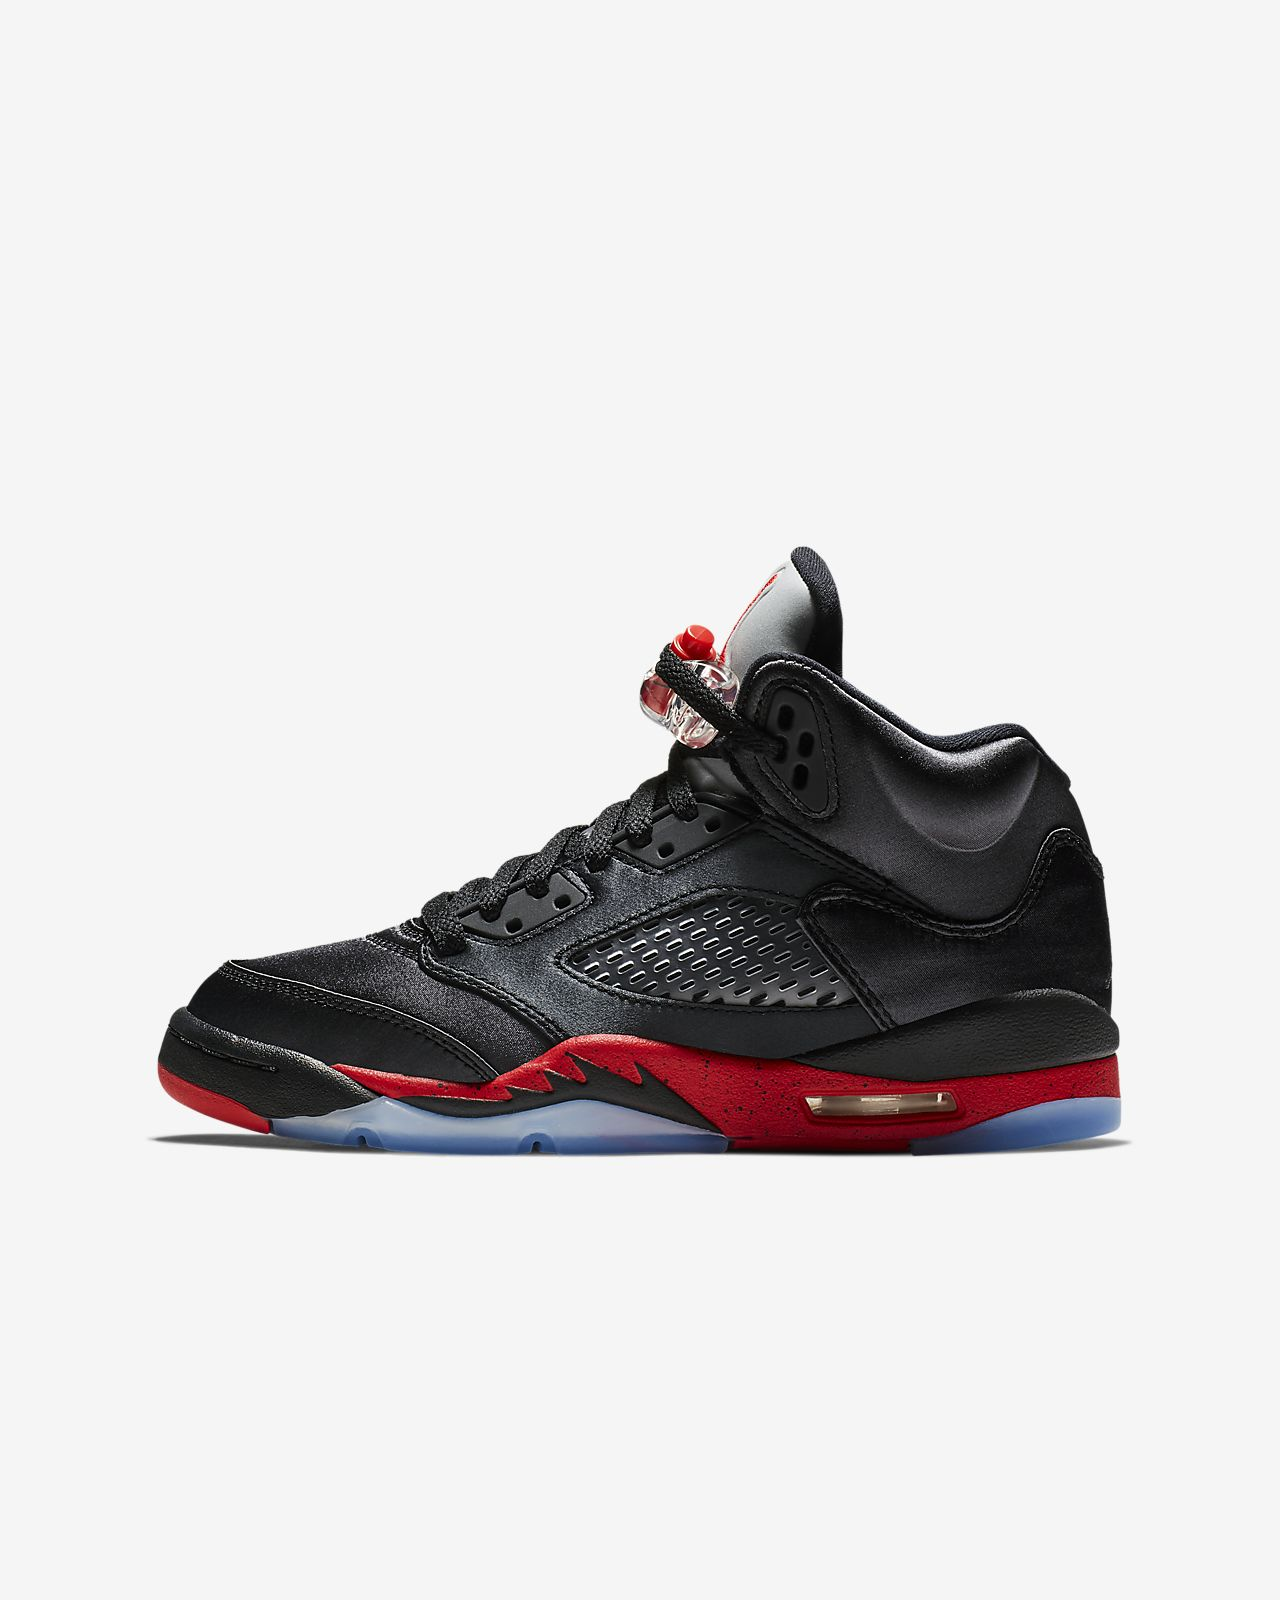 1ae41dc5ba7b35 Air Jordan 5 Retro Older Kids  Shoe. Nike.com CA